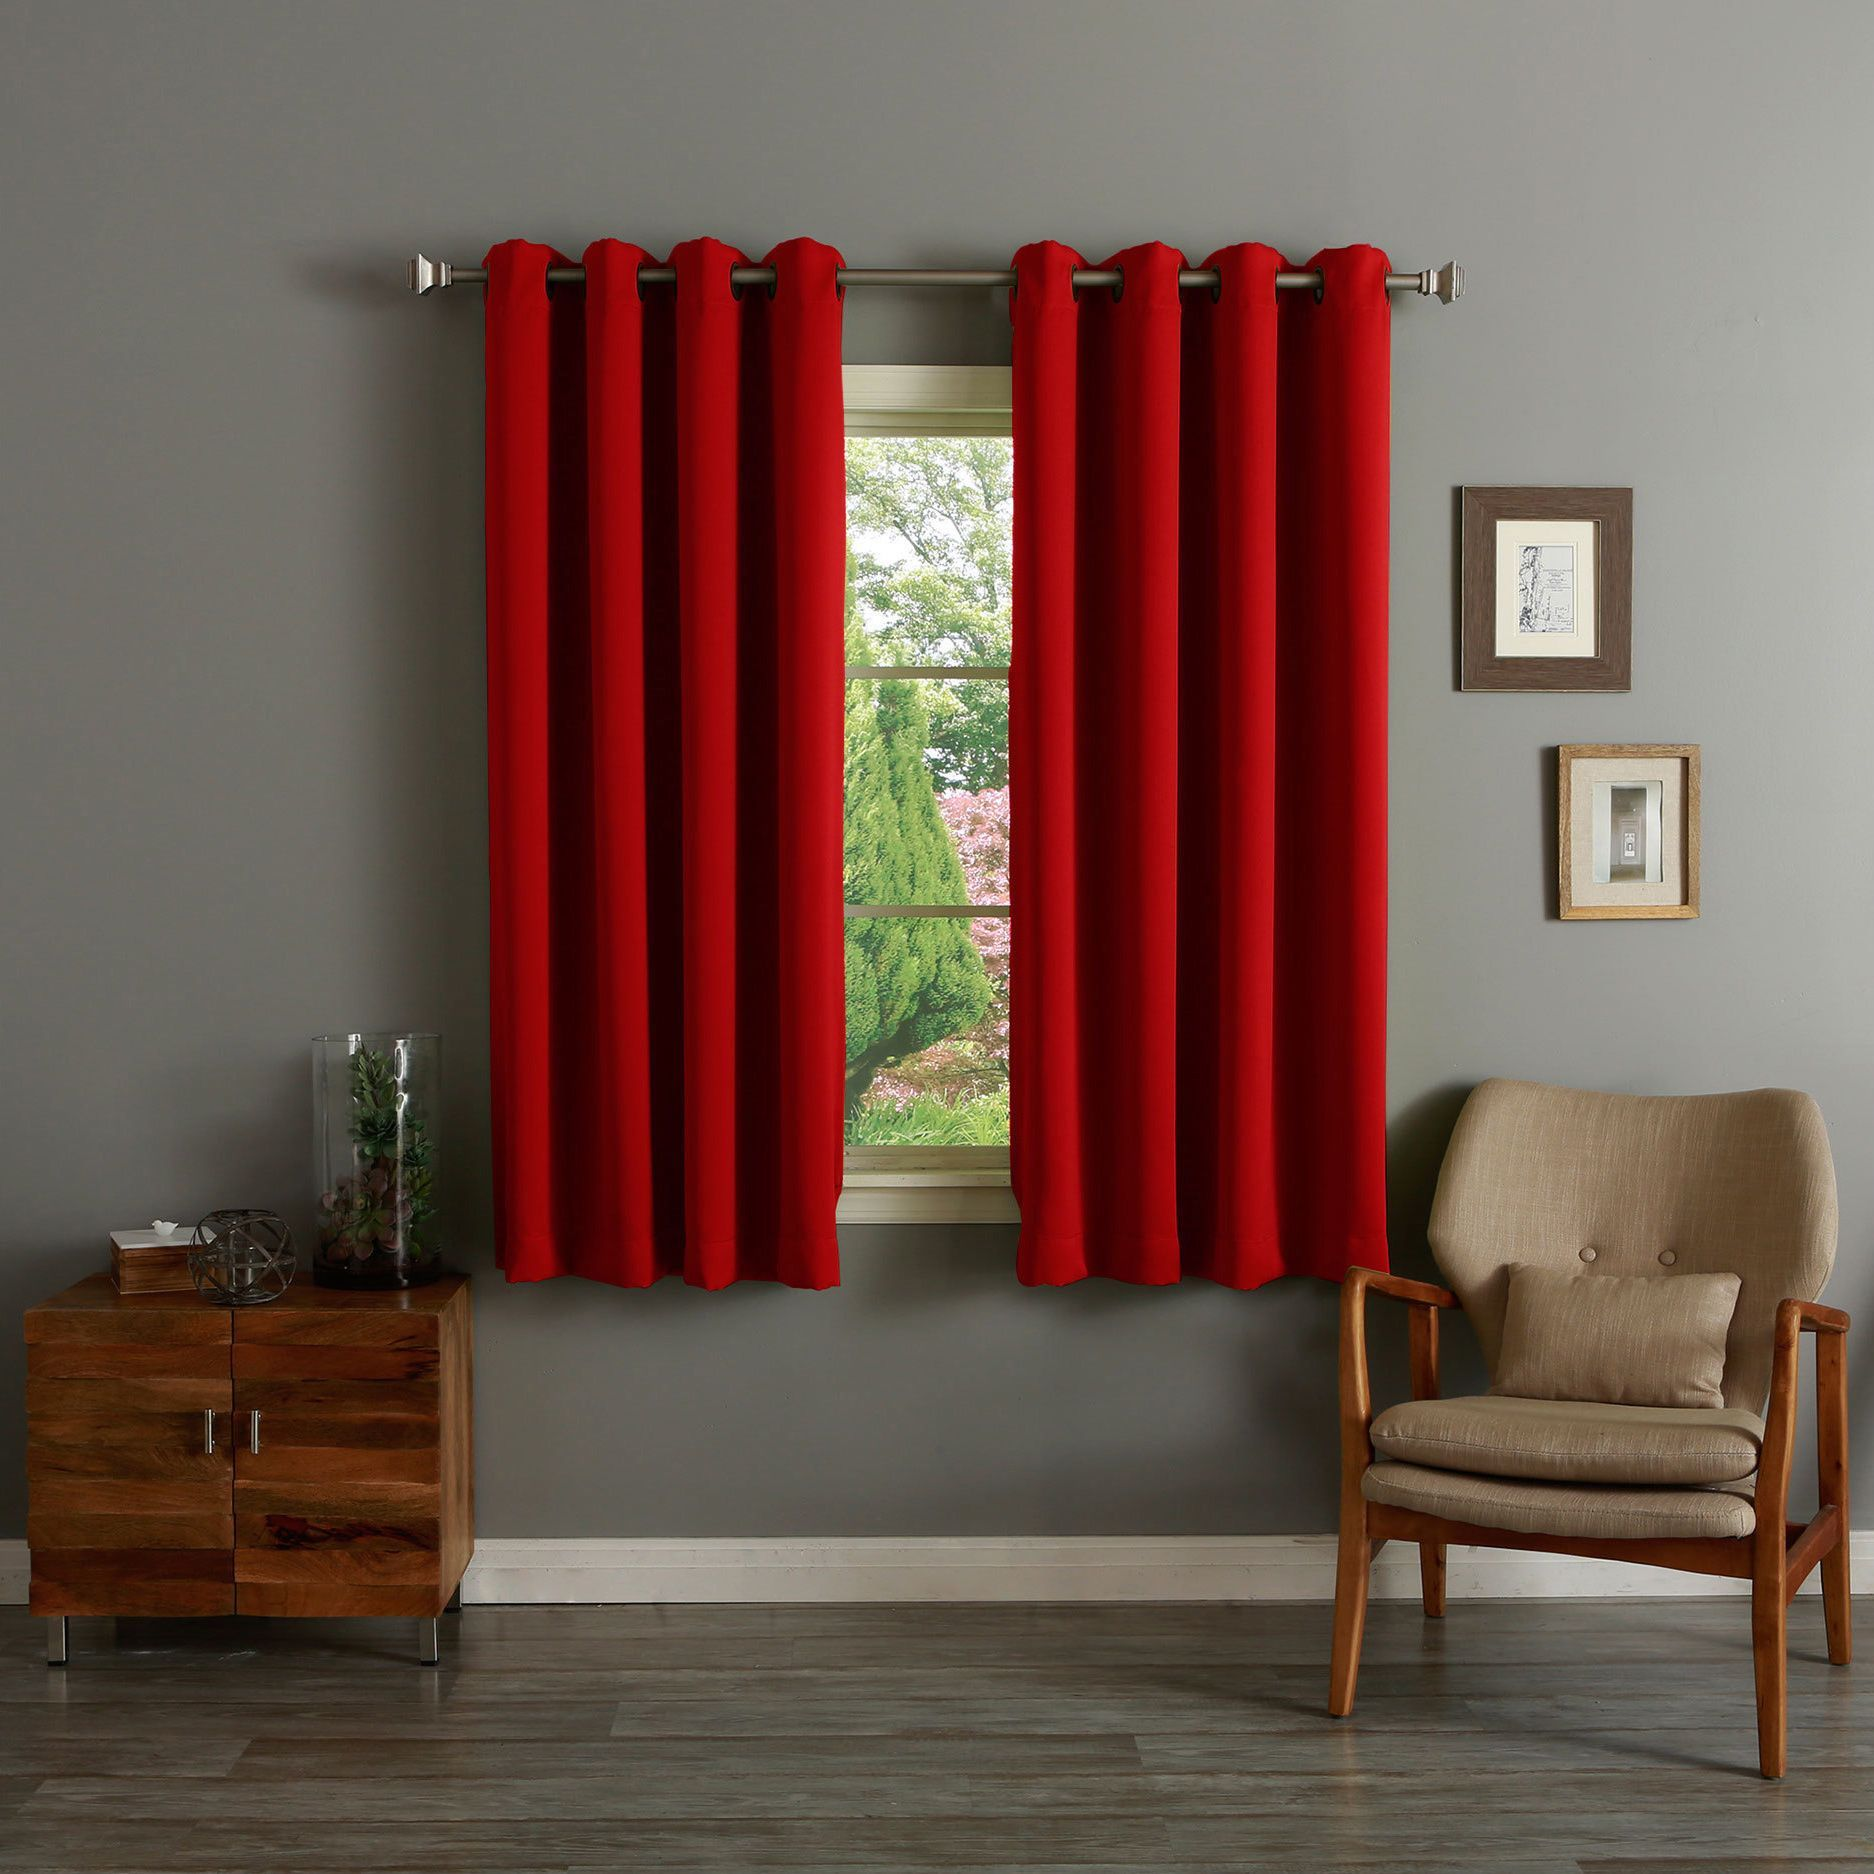 Outside window treatment ideas  this blackout curtain pair keeps sunlight and prying eyes out it